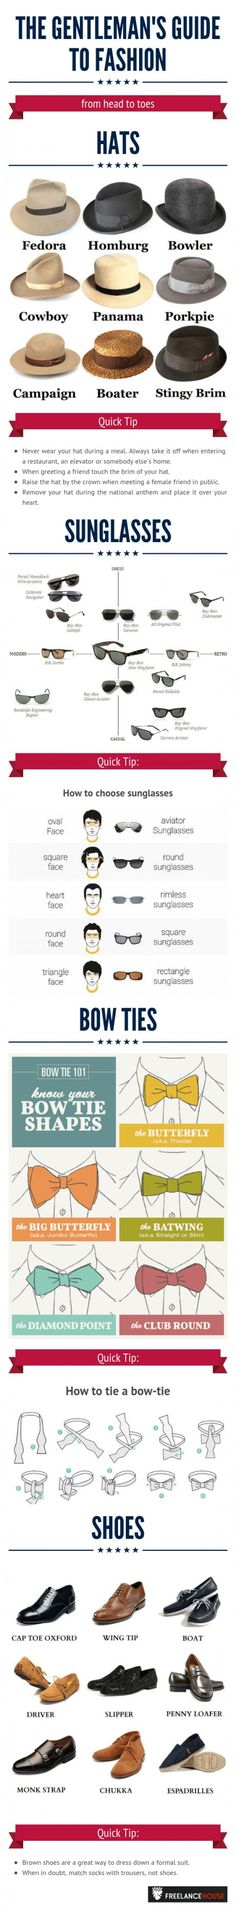 The Gentleman's Guide to Fashion